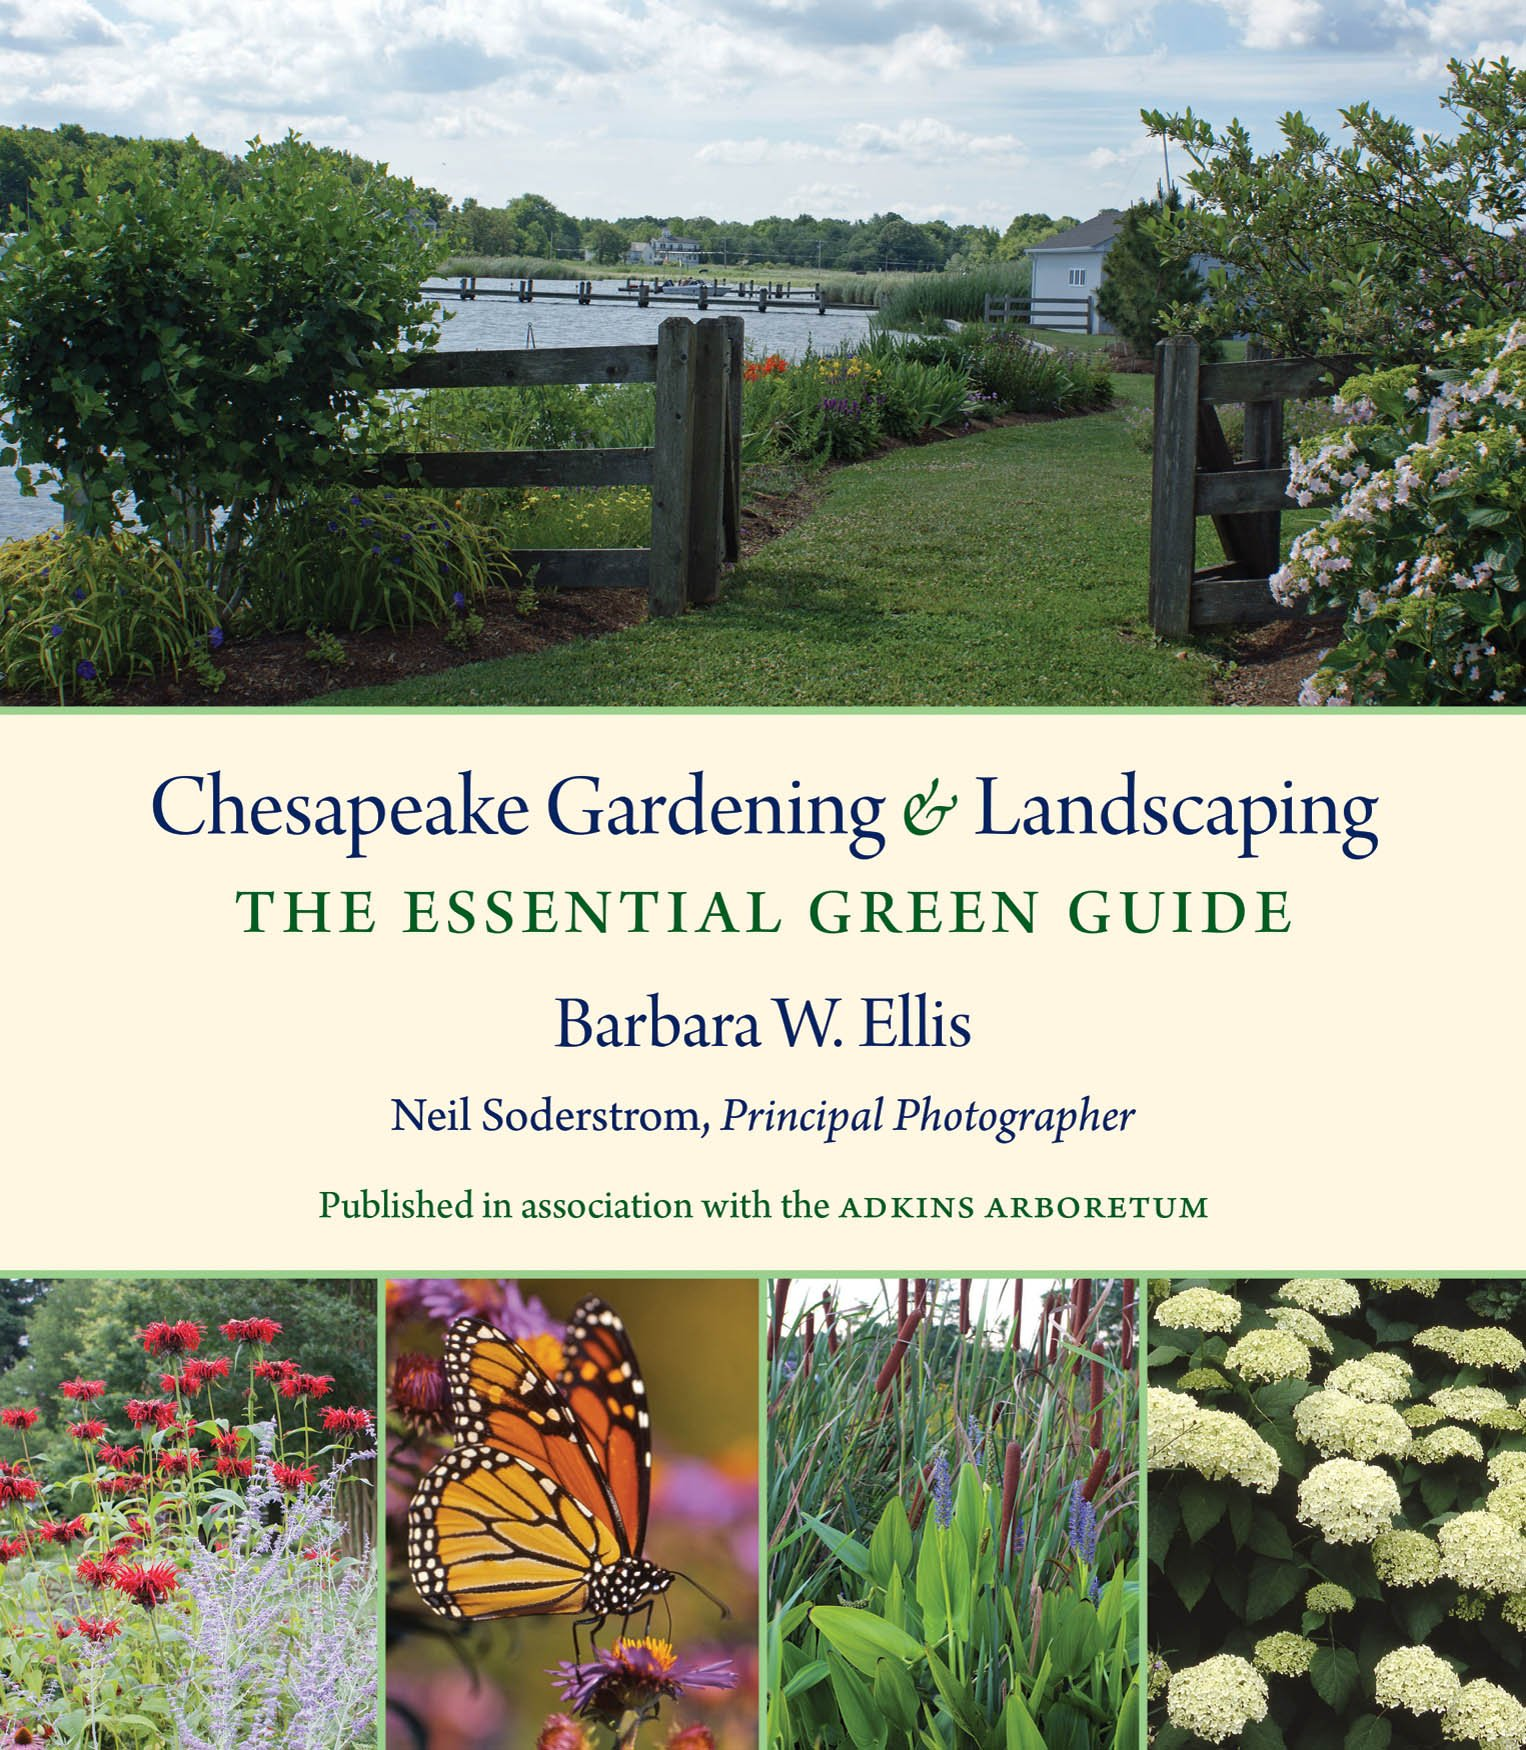 Chesapeake gardening and landscaping the essential green guide chesapeake gardening and landscaping the essential green guide barbara w ellis neil soderstrom 9781469620978 amazon books workwithnaturefo